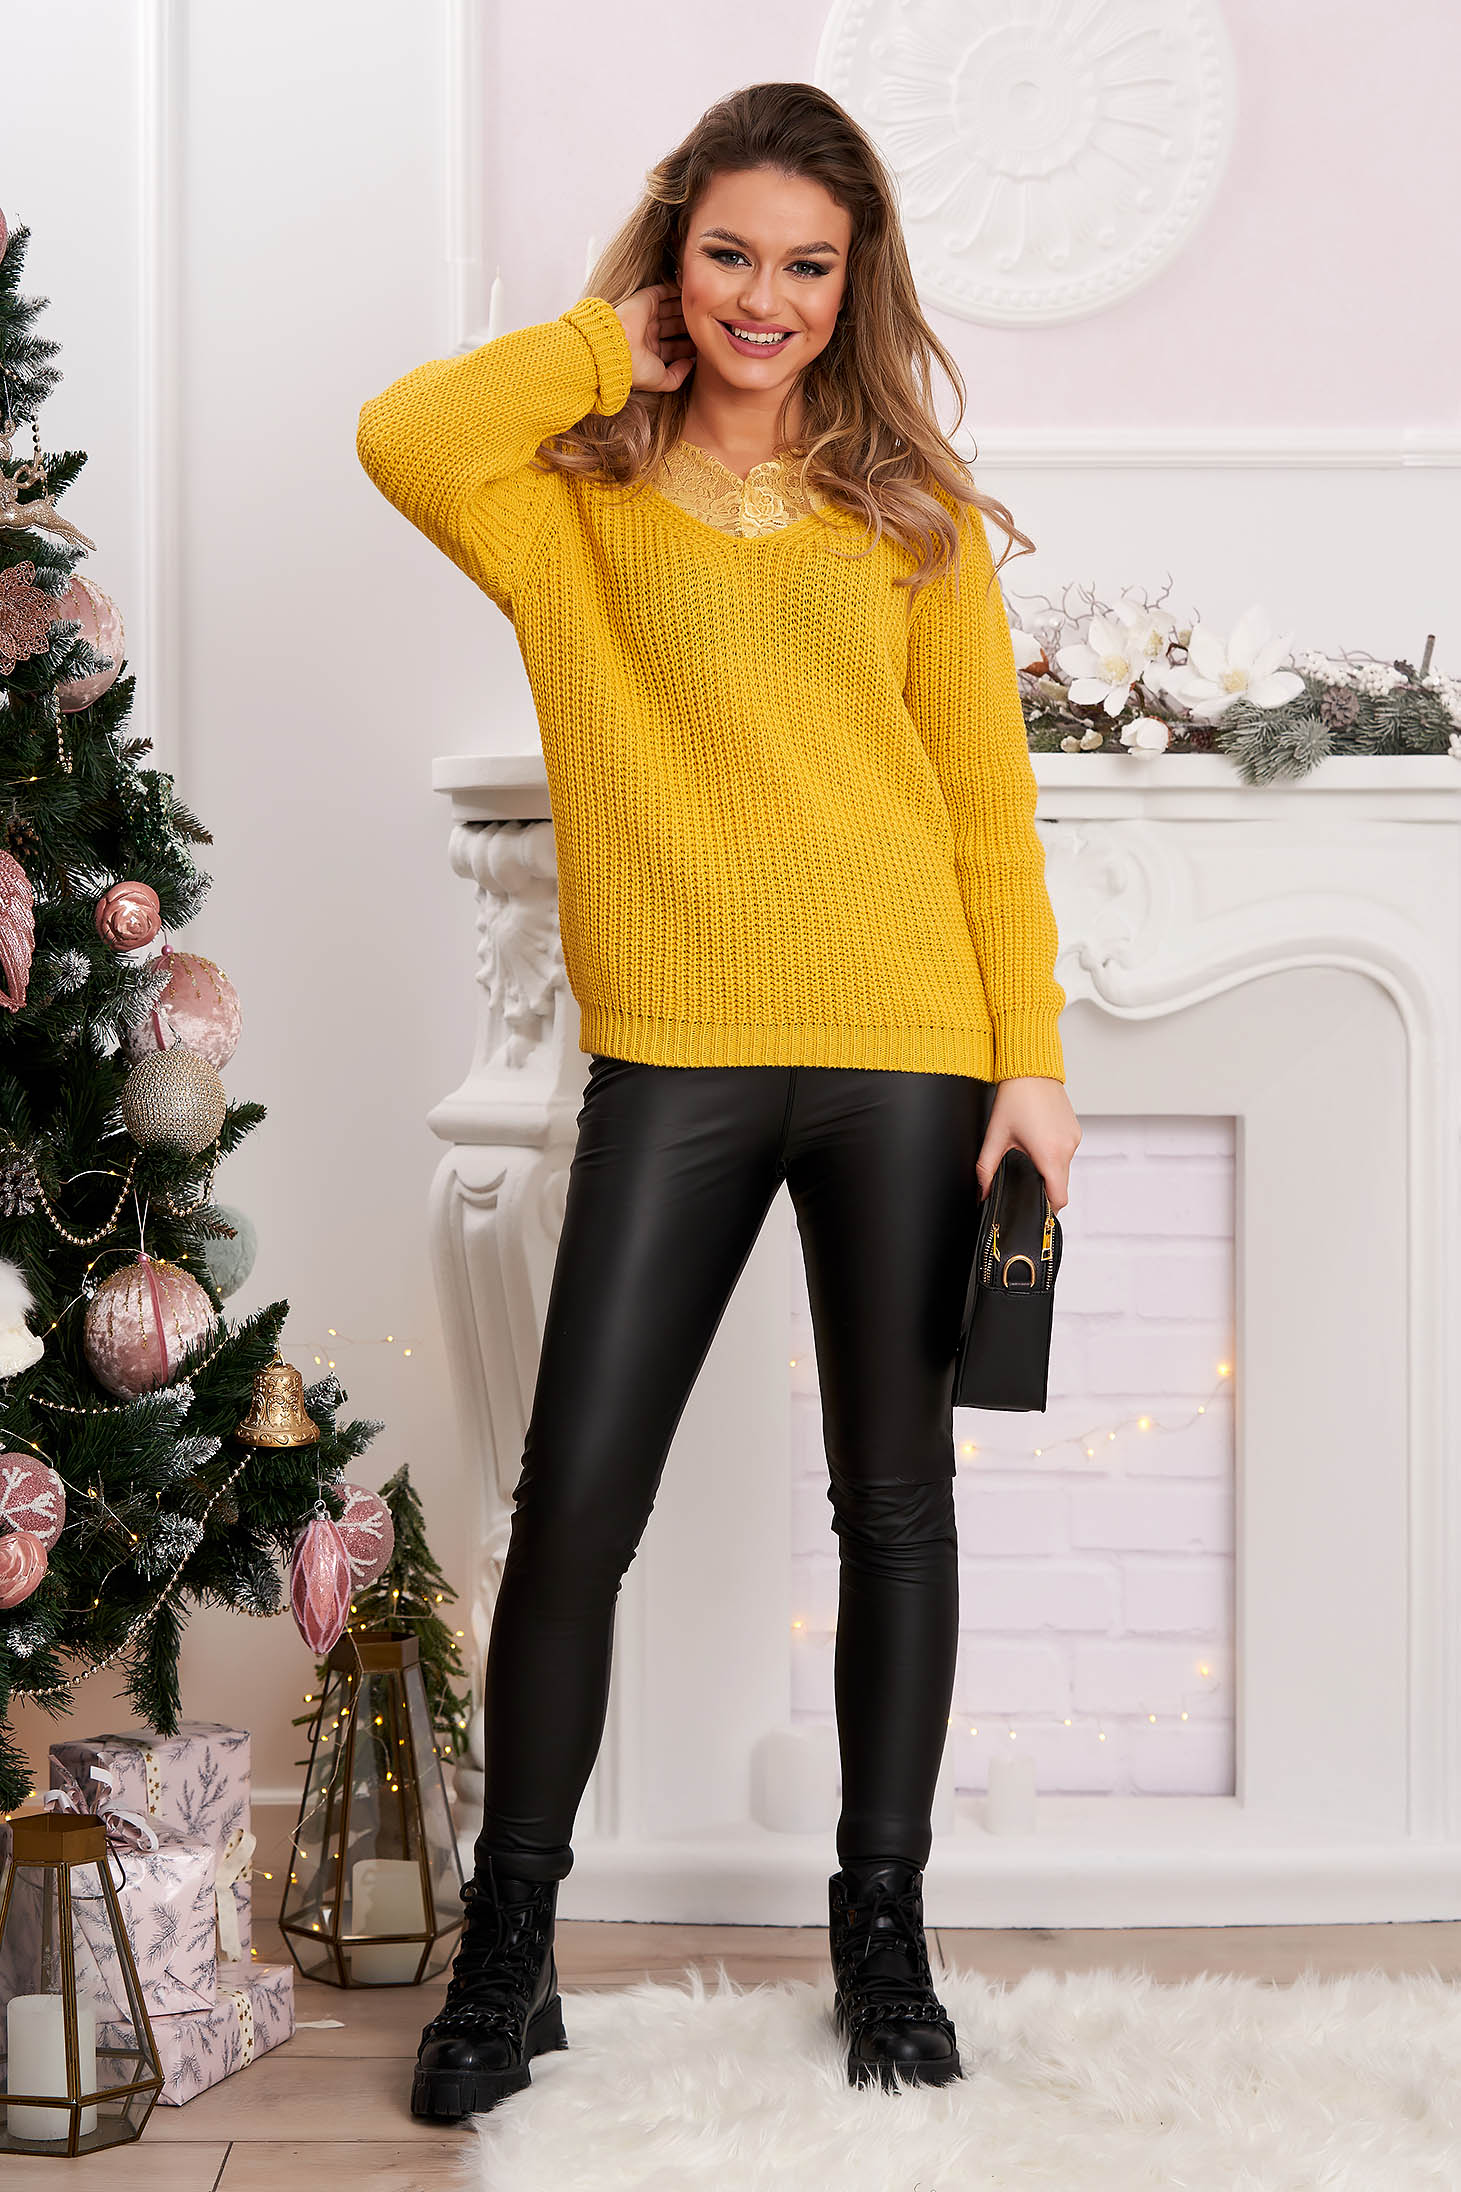 Sweater flared yellow knitted with lace details